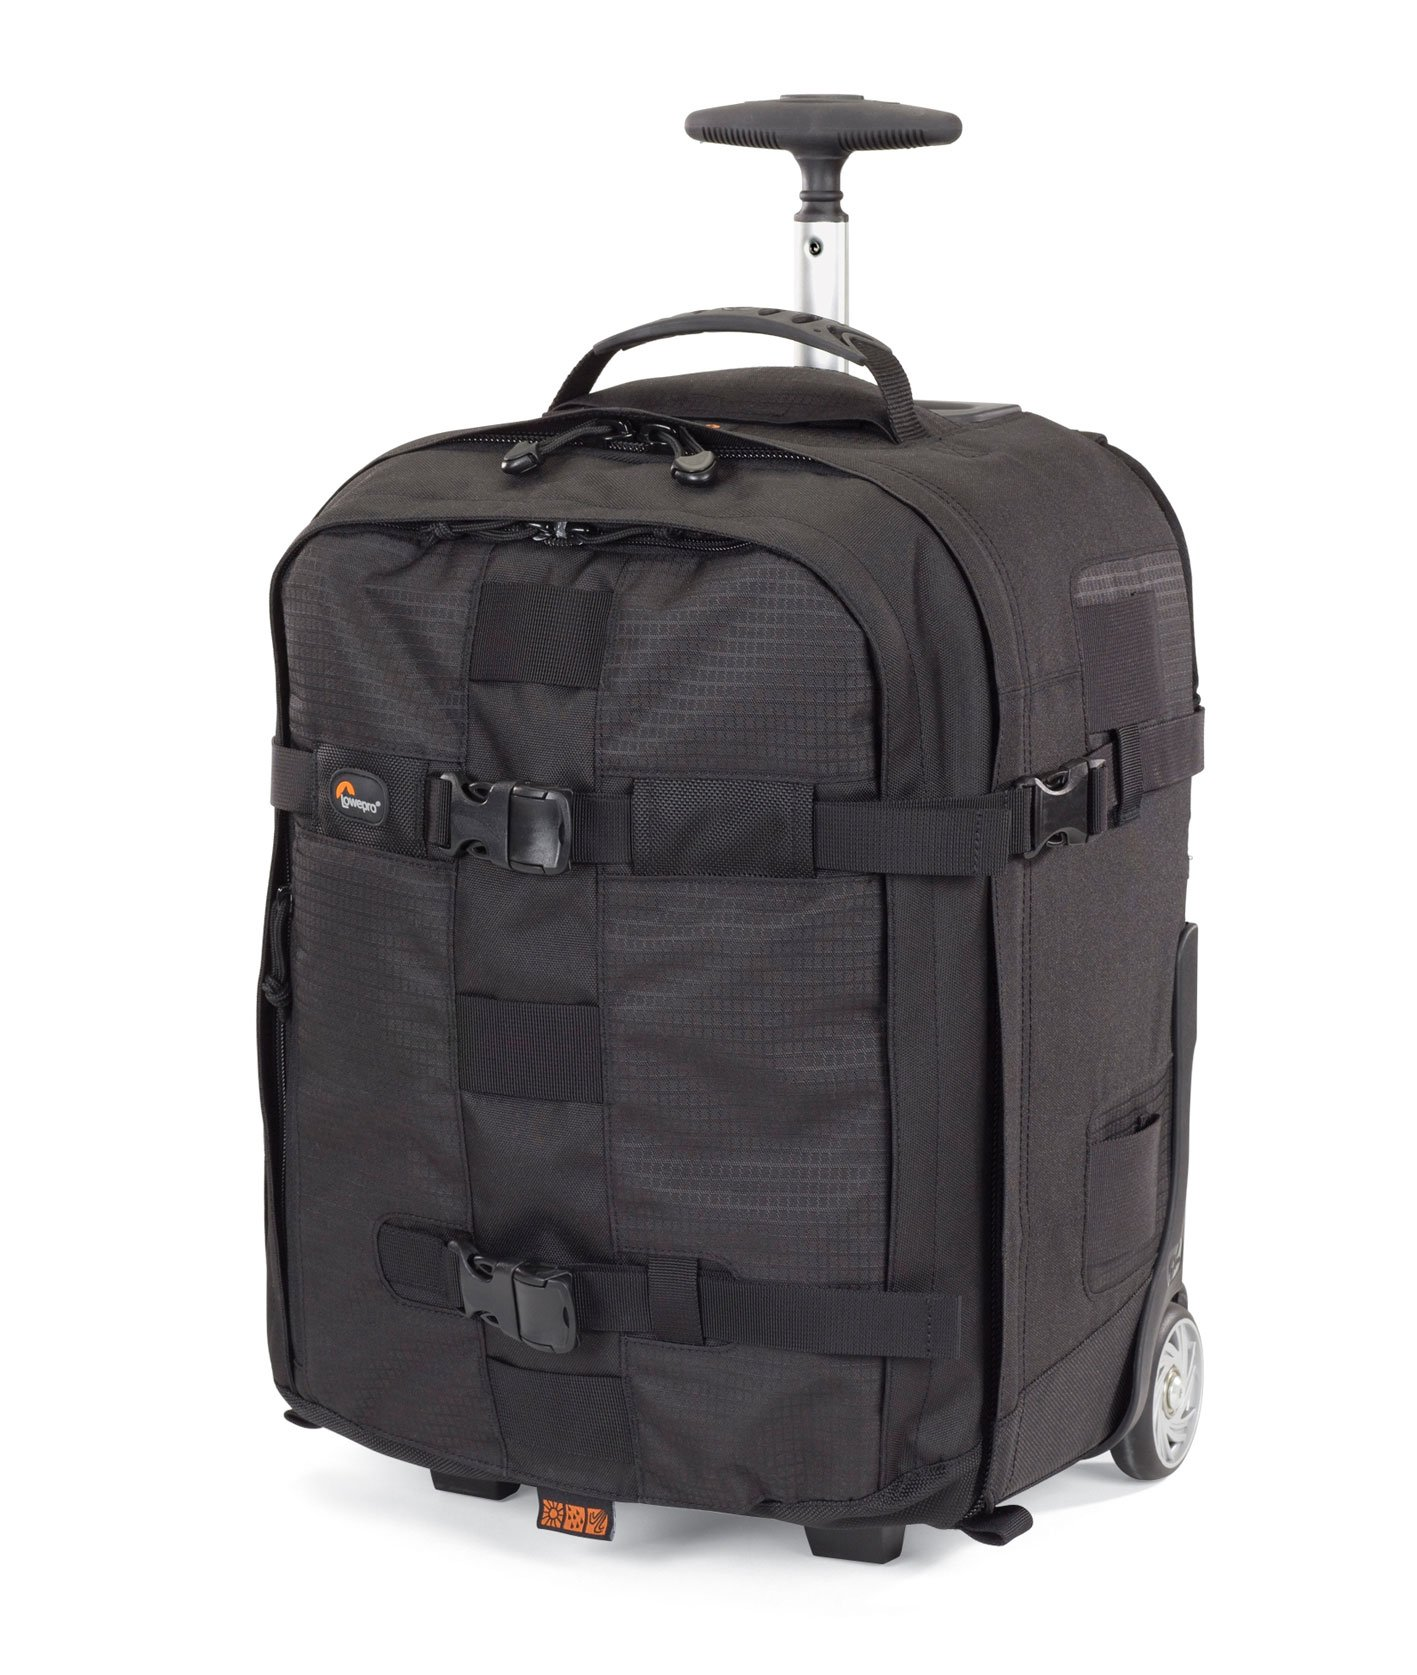 Lowepro Pro Runner x350 AW DSLR Backpack (Black) by Lowepro